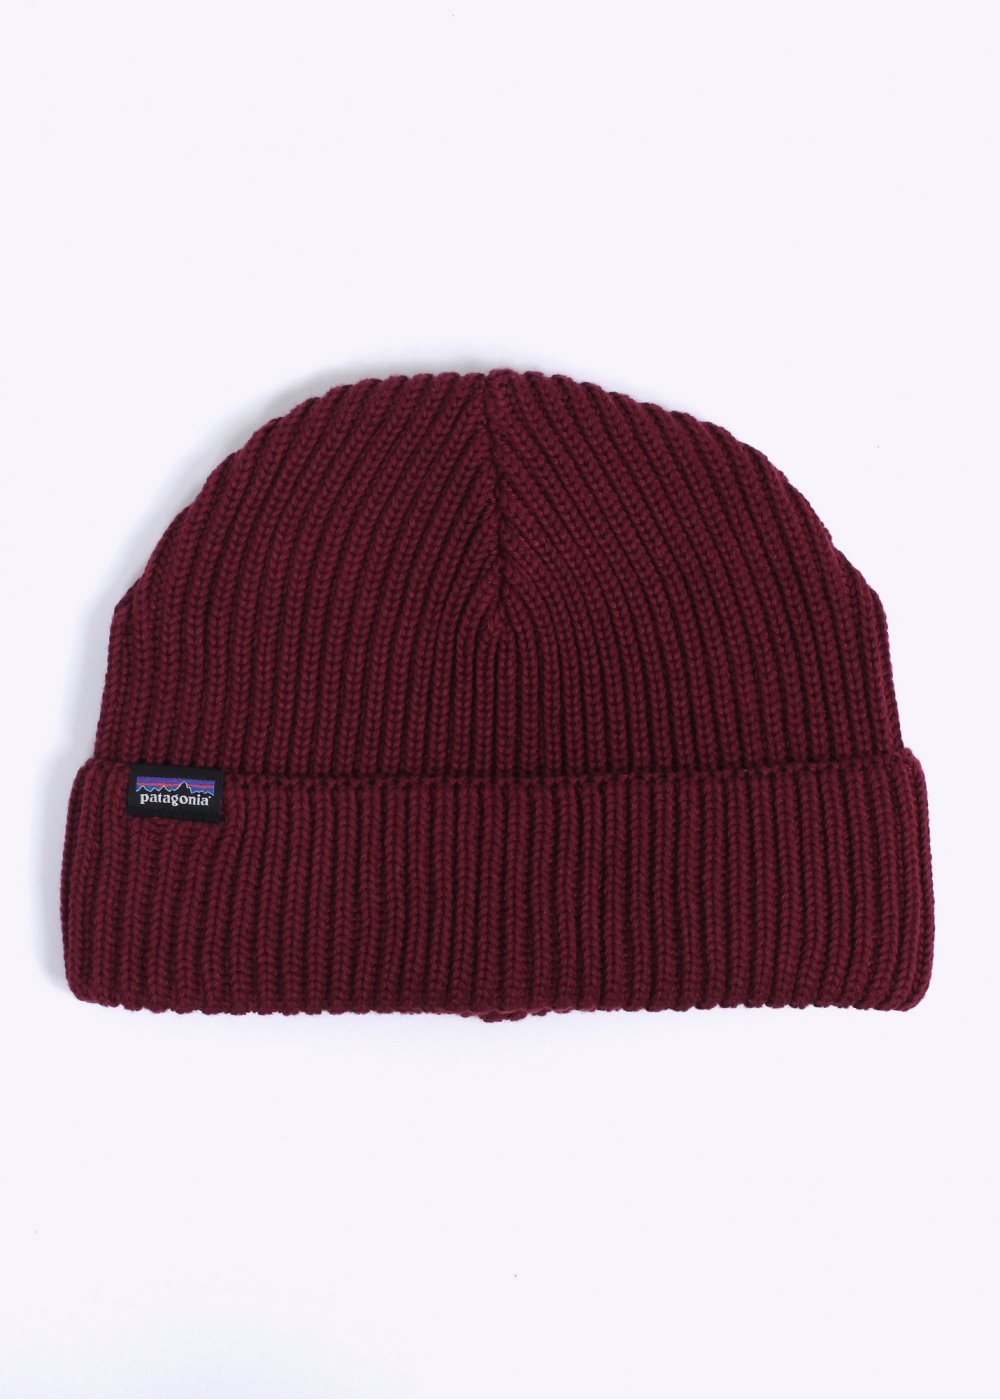 1613d8636ea Patagonia Fishermans Rolled Beanie - Oxblood Red